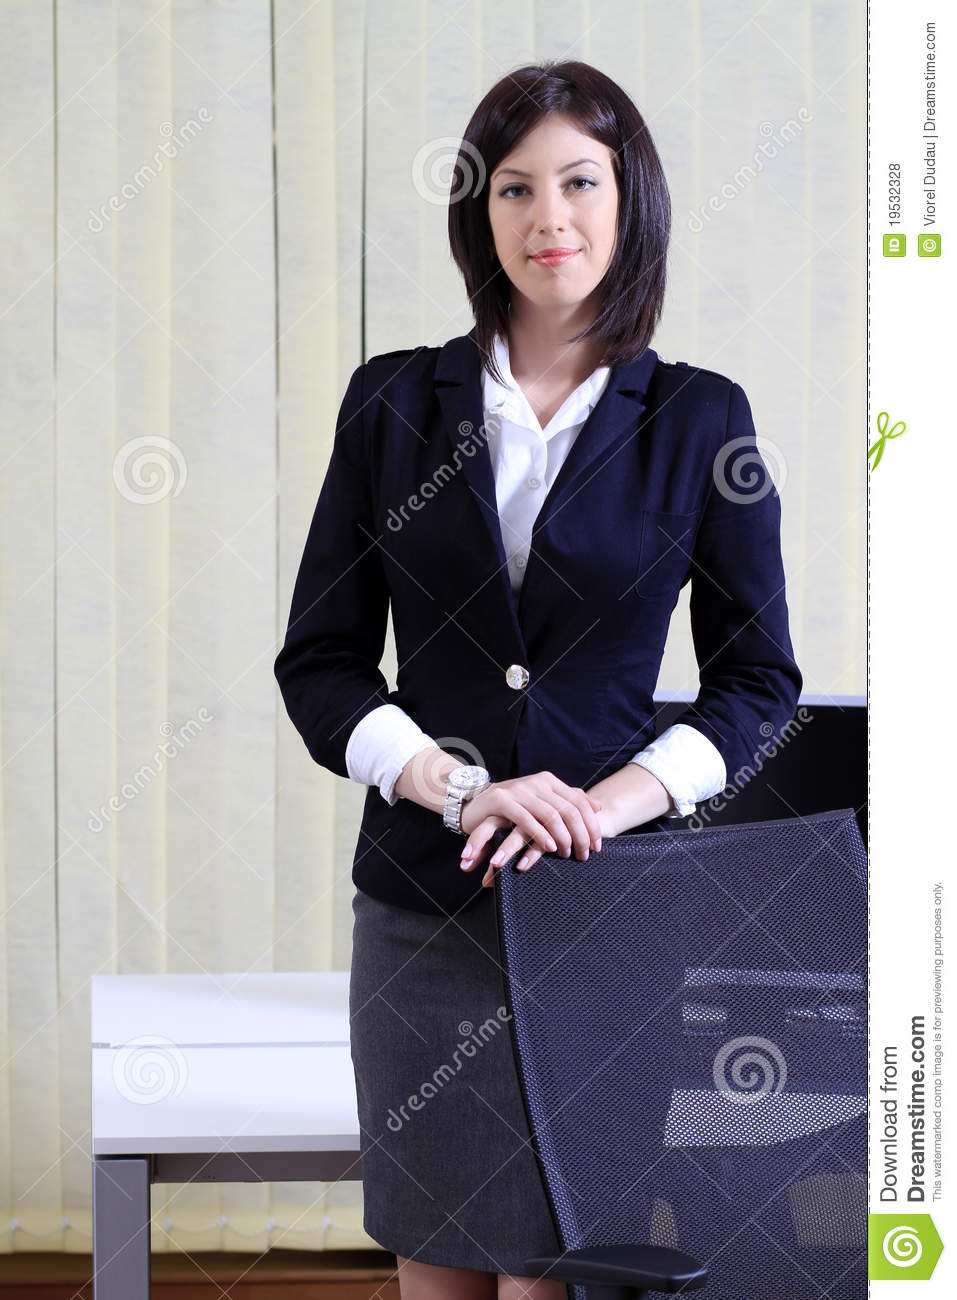 Corporate portrait of a business woman